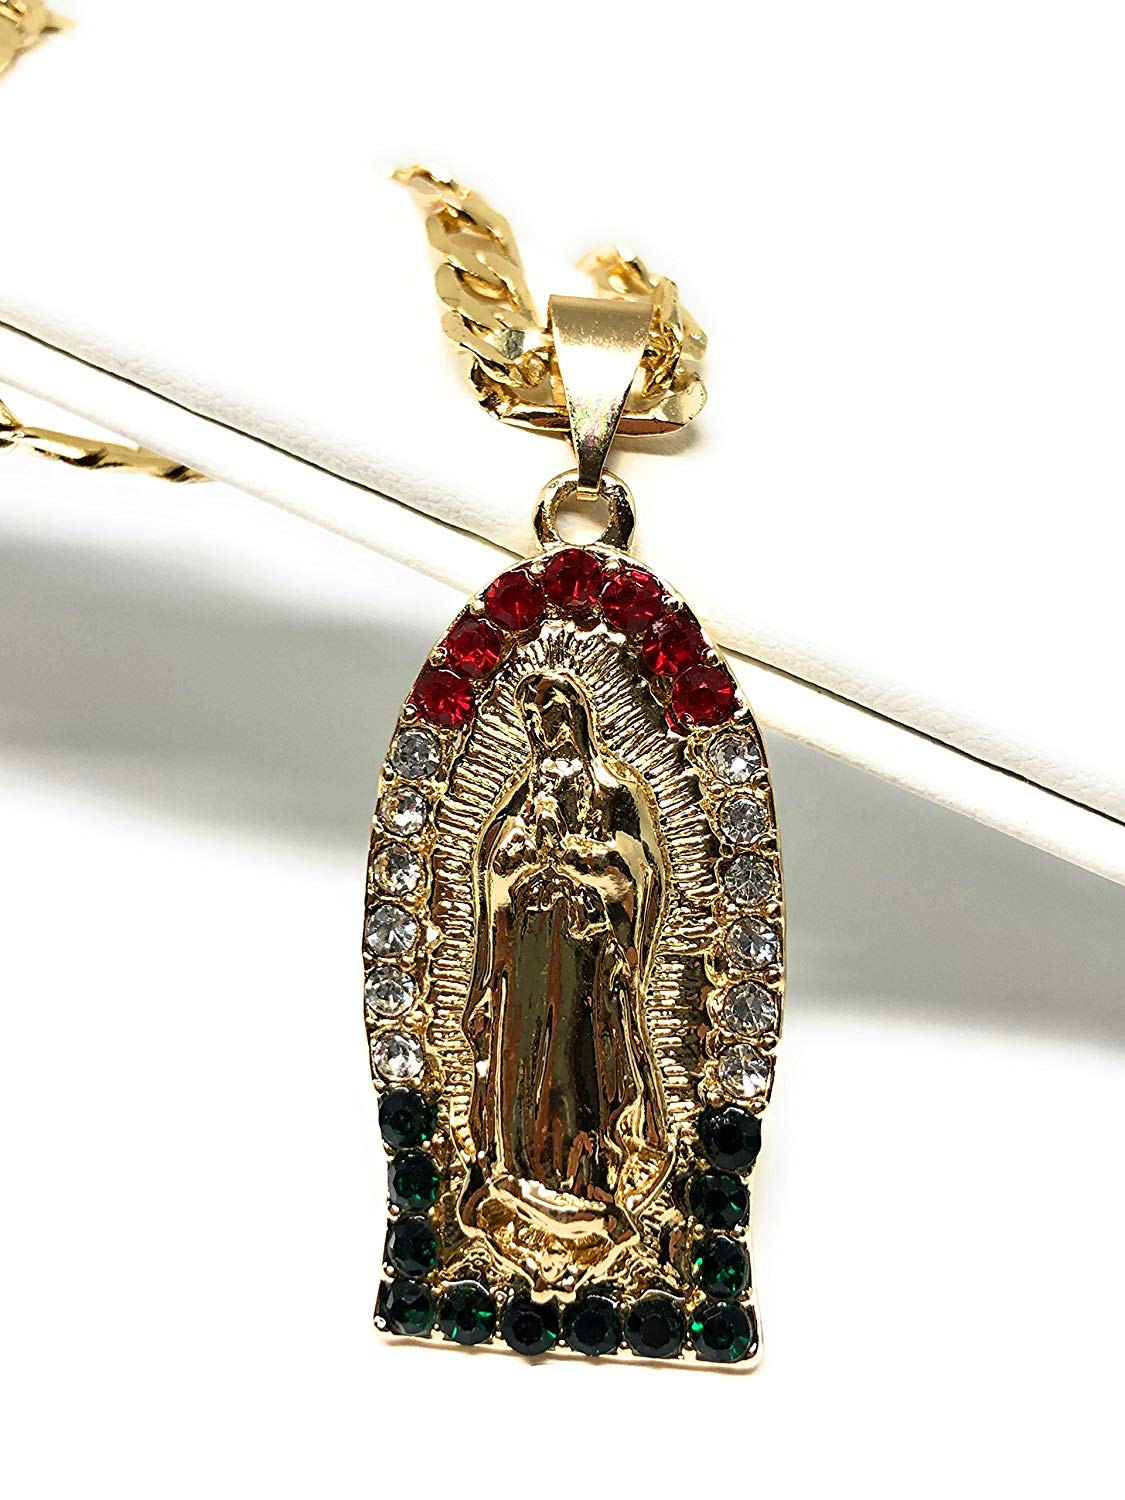 "Gold Plated Virgin Mary Pendant Necklace Virgen de Guadalupe Medalla Cadena 26"" Oro Laminado - Fran & Co. Jewelry"